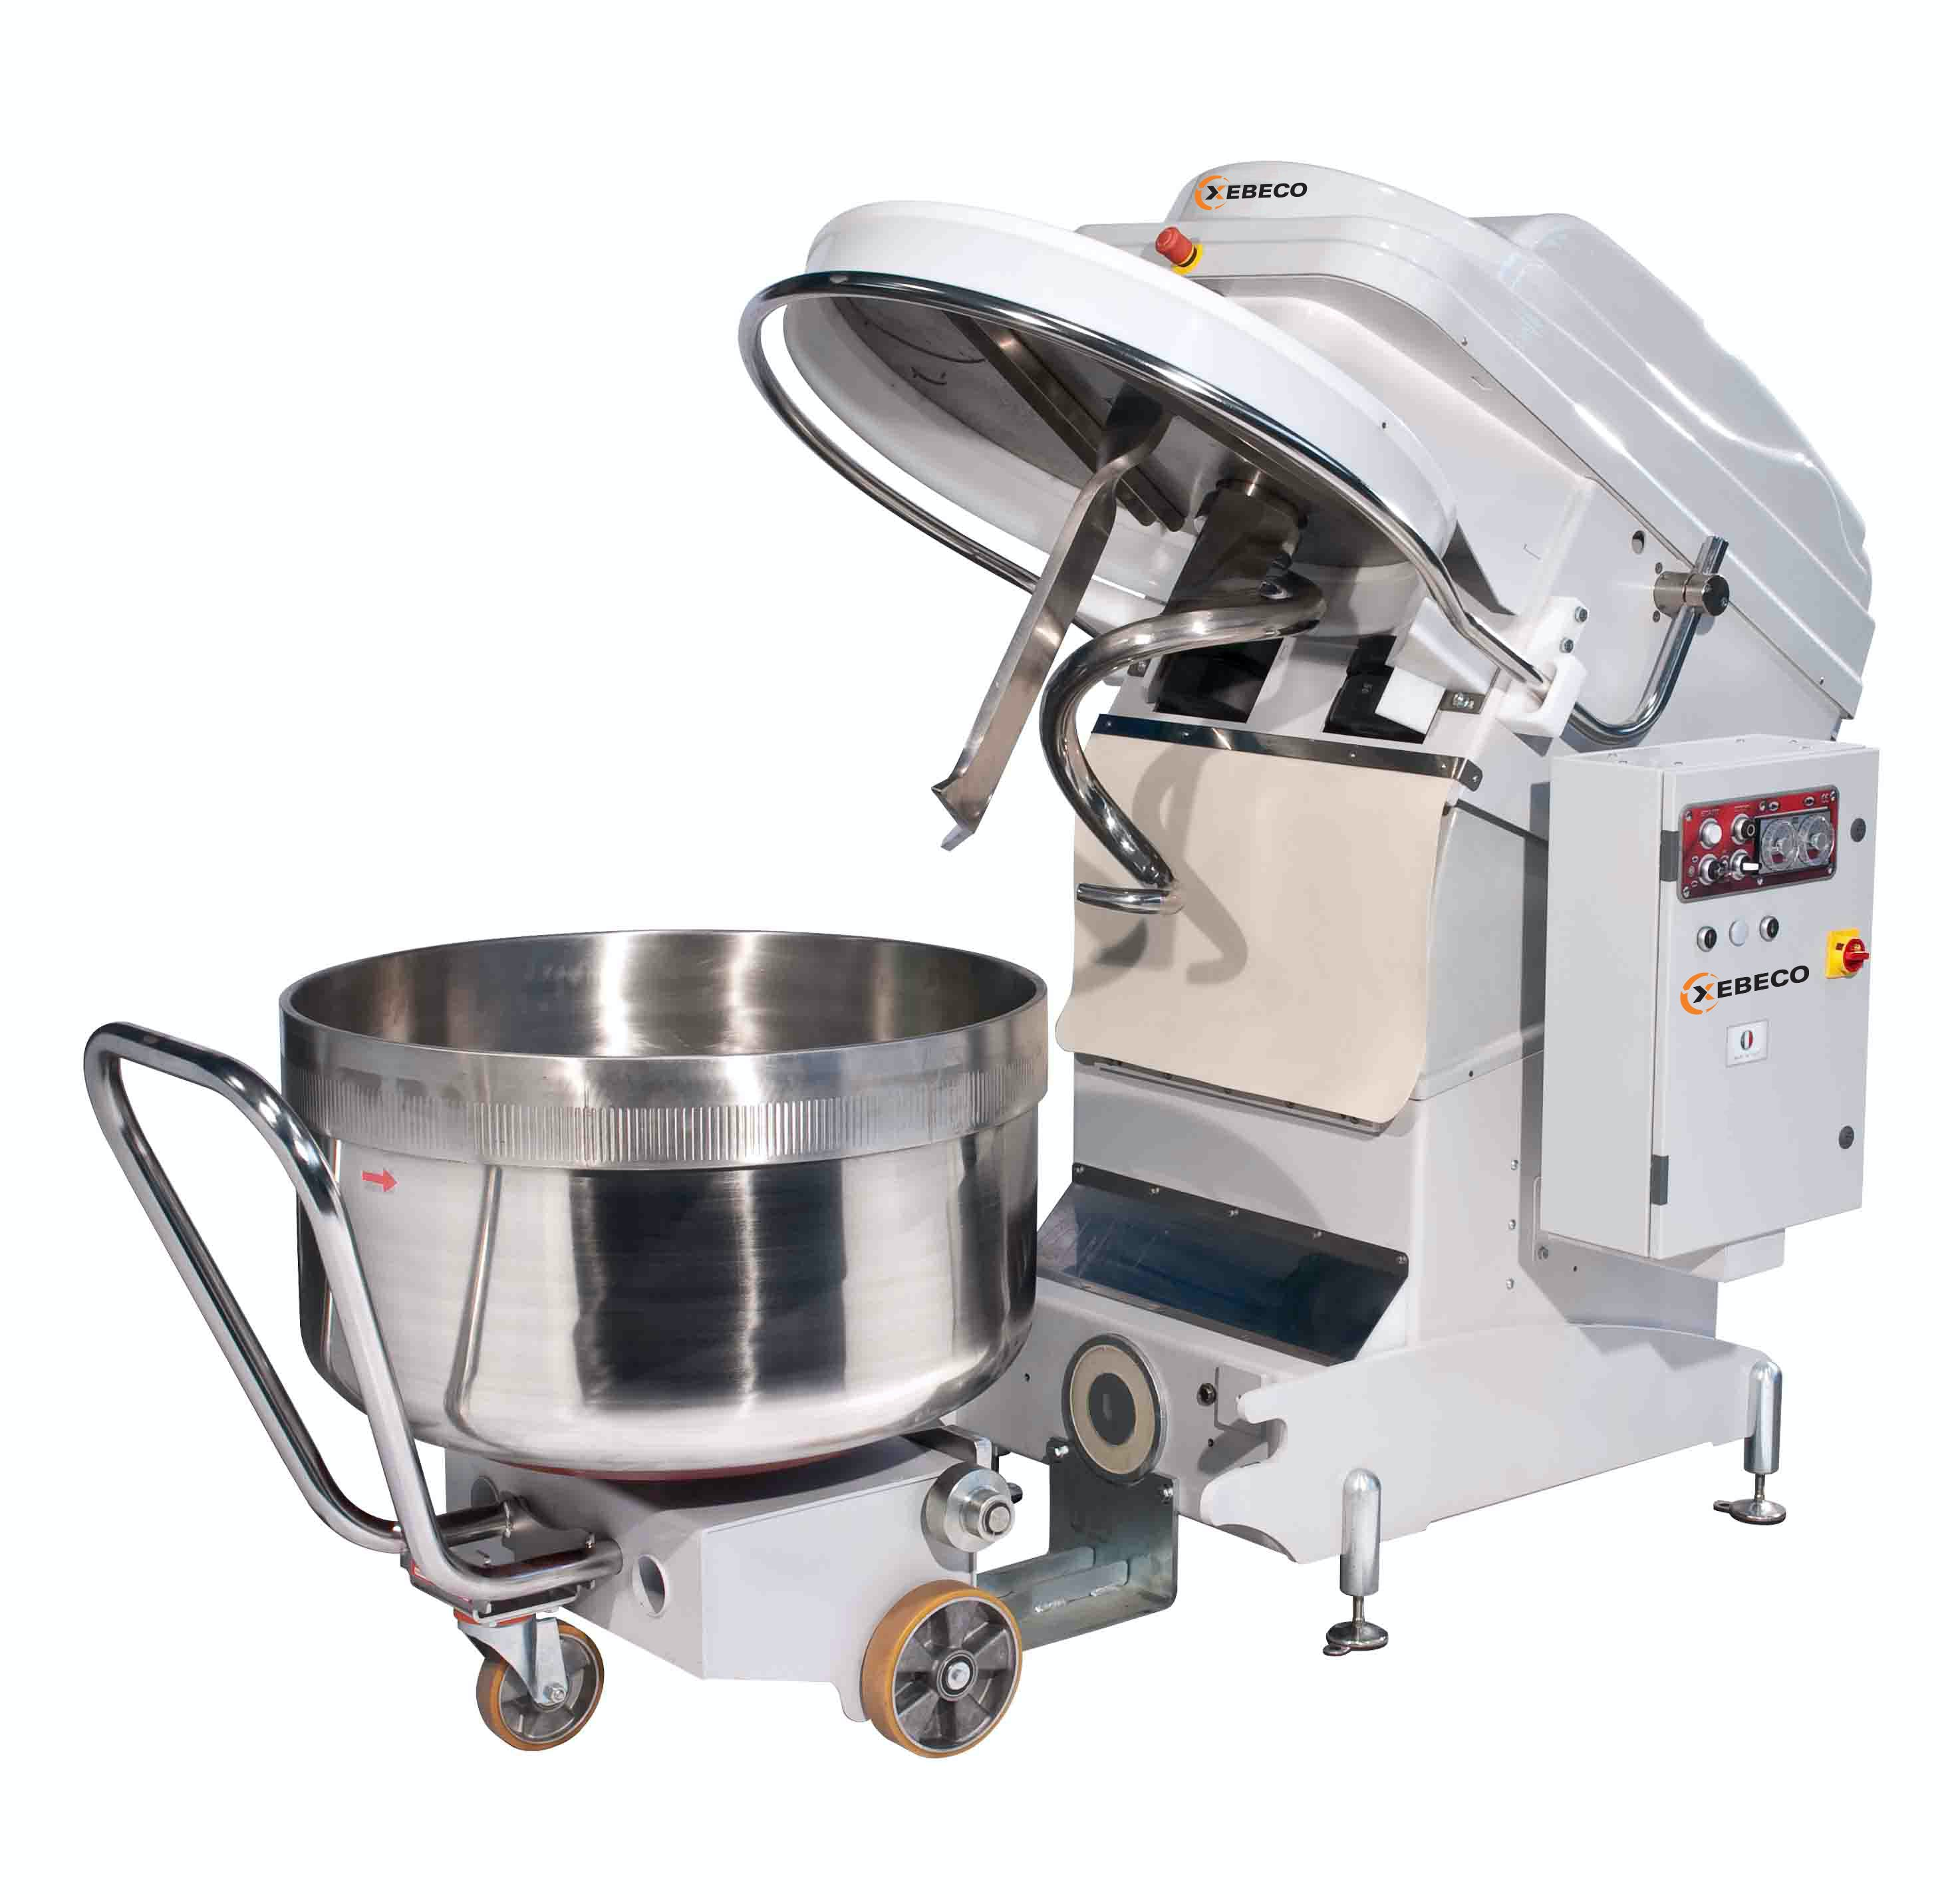 XeRRB350 Redline Mixer with Removable Bowl Mixer sold by Pizza Solutions